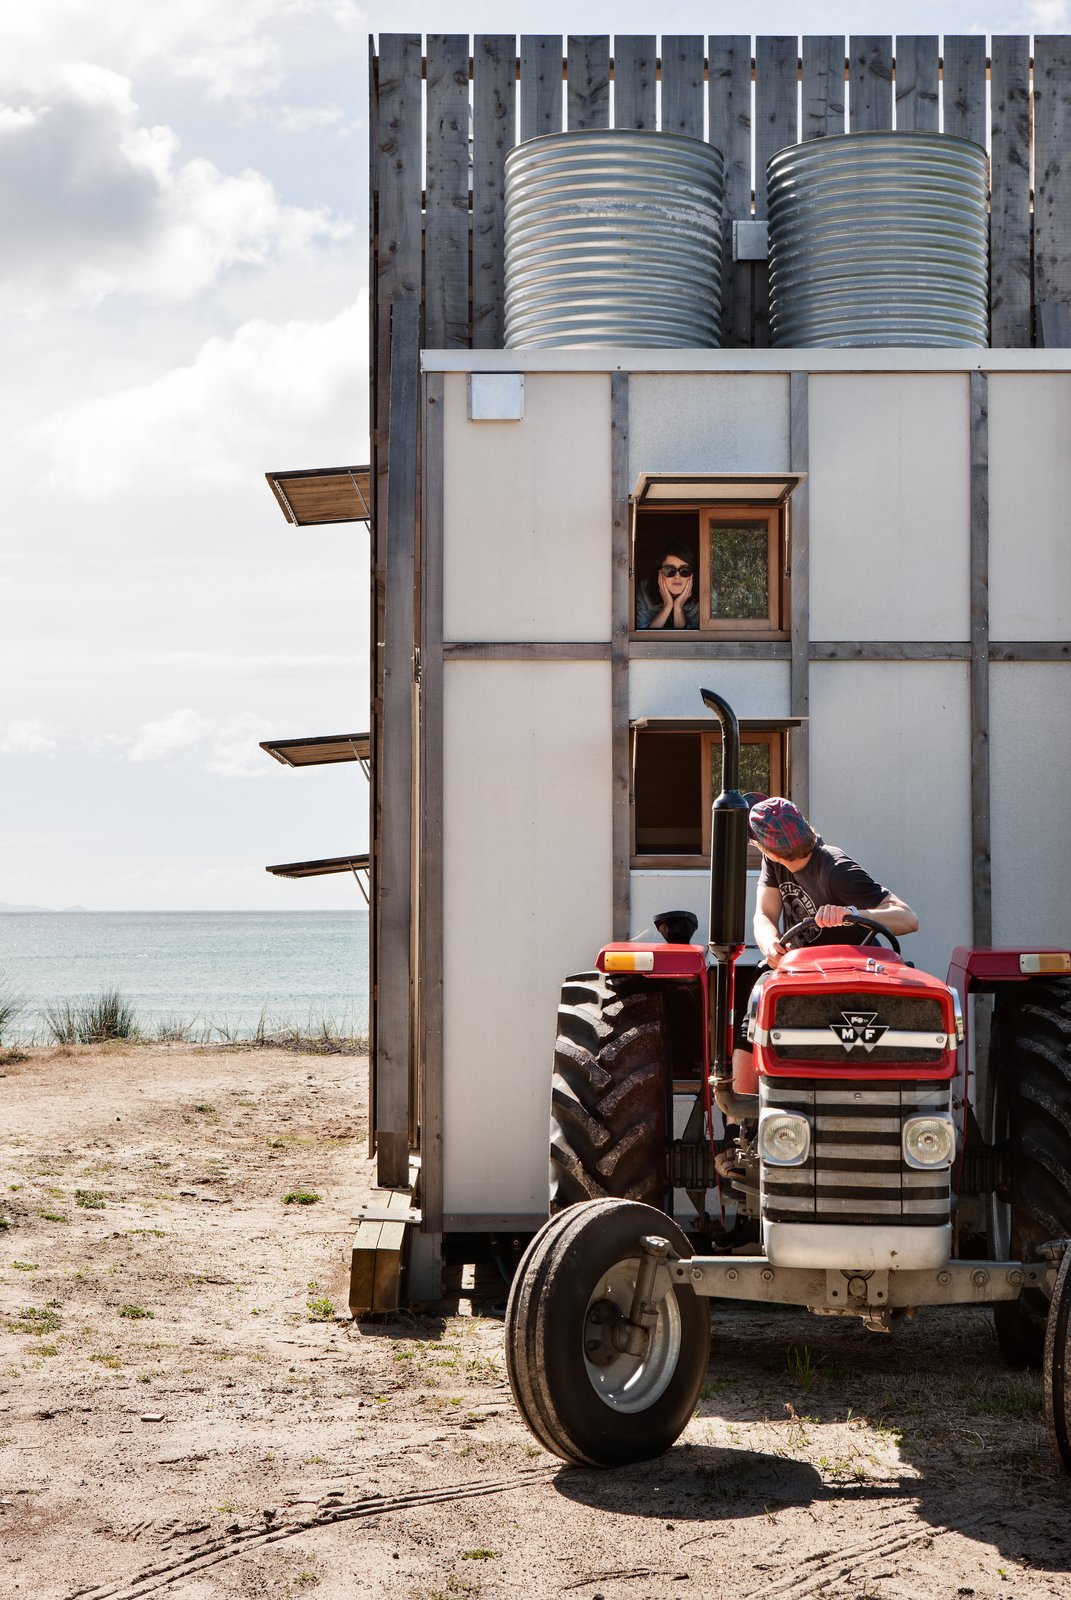 A Family of Five Lives Sustainably in This Tiny, Mobile Beach Hut